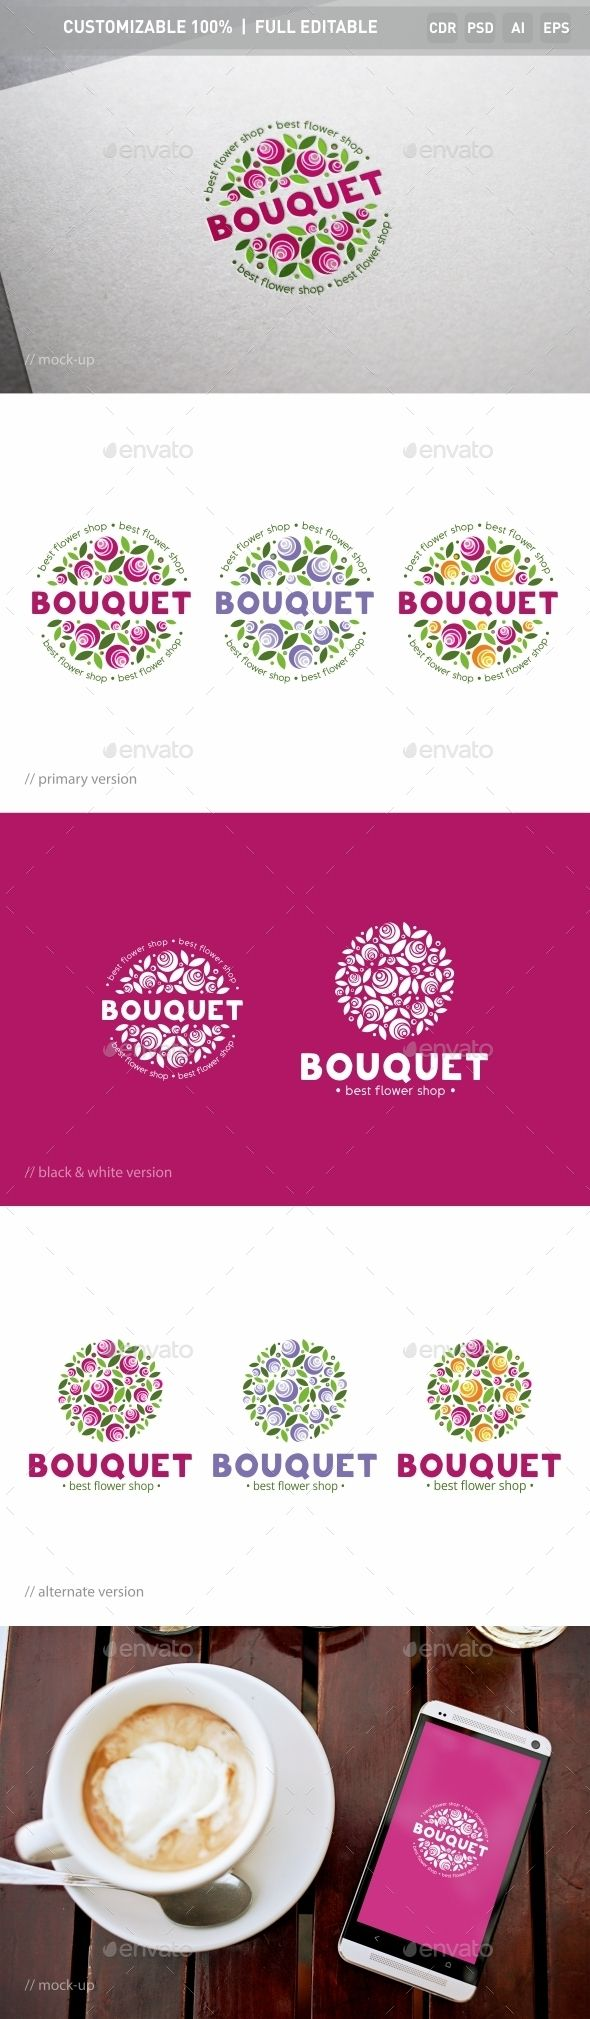 Bouquet of Flowers - Logo Design Template Vector #logotype Download it here: http://graphicriver.net/item/bouquet-of-flowers-logo-template/12965287?s_rank=223?ref=nesto